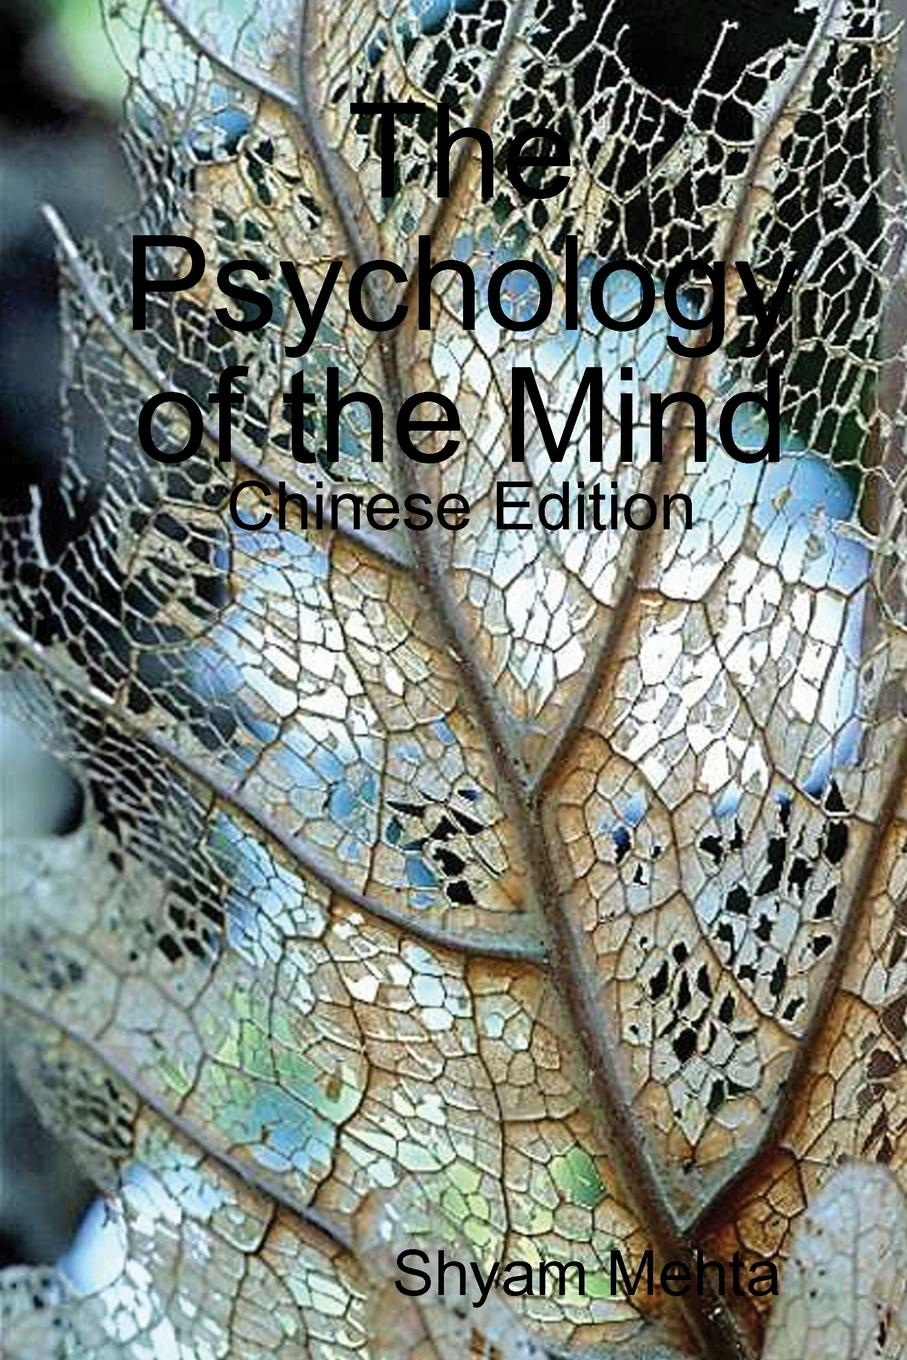 Shyam Mehta The Psychology of the Mind. Chinese Edition free shipping kayipht cm400ha1 24h can directly buy or contact the seller